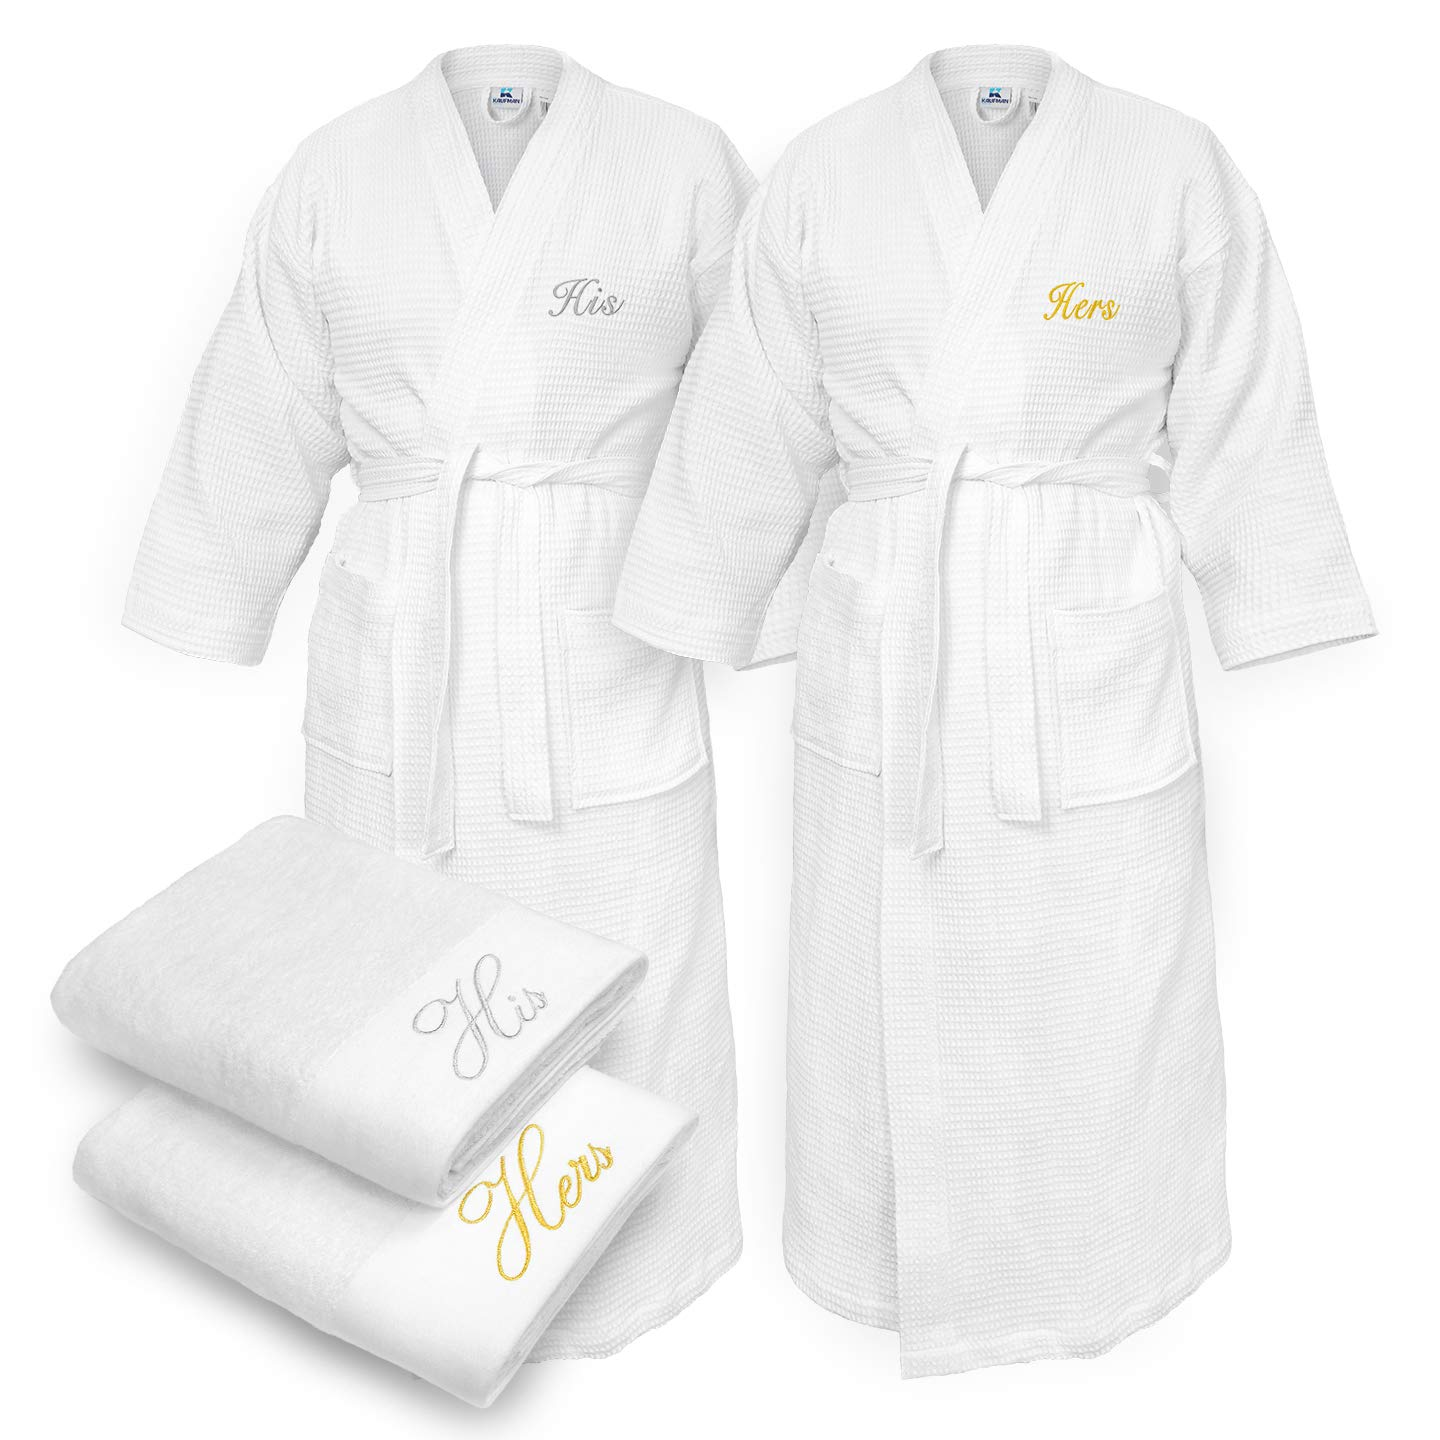 Kaufman - Terry Cloth Bathrobes 100% Cotton - His and Hers Embroidered Waffle Kimono Set of Robes with His and Hers White Towel Set 30''x58'' 4-PK